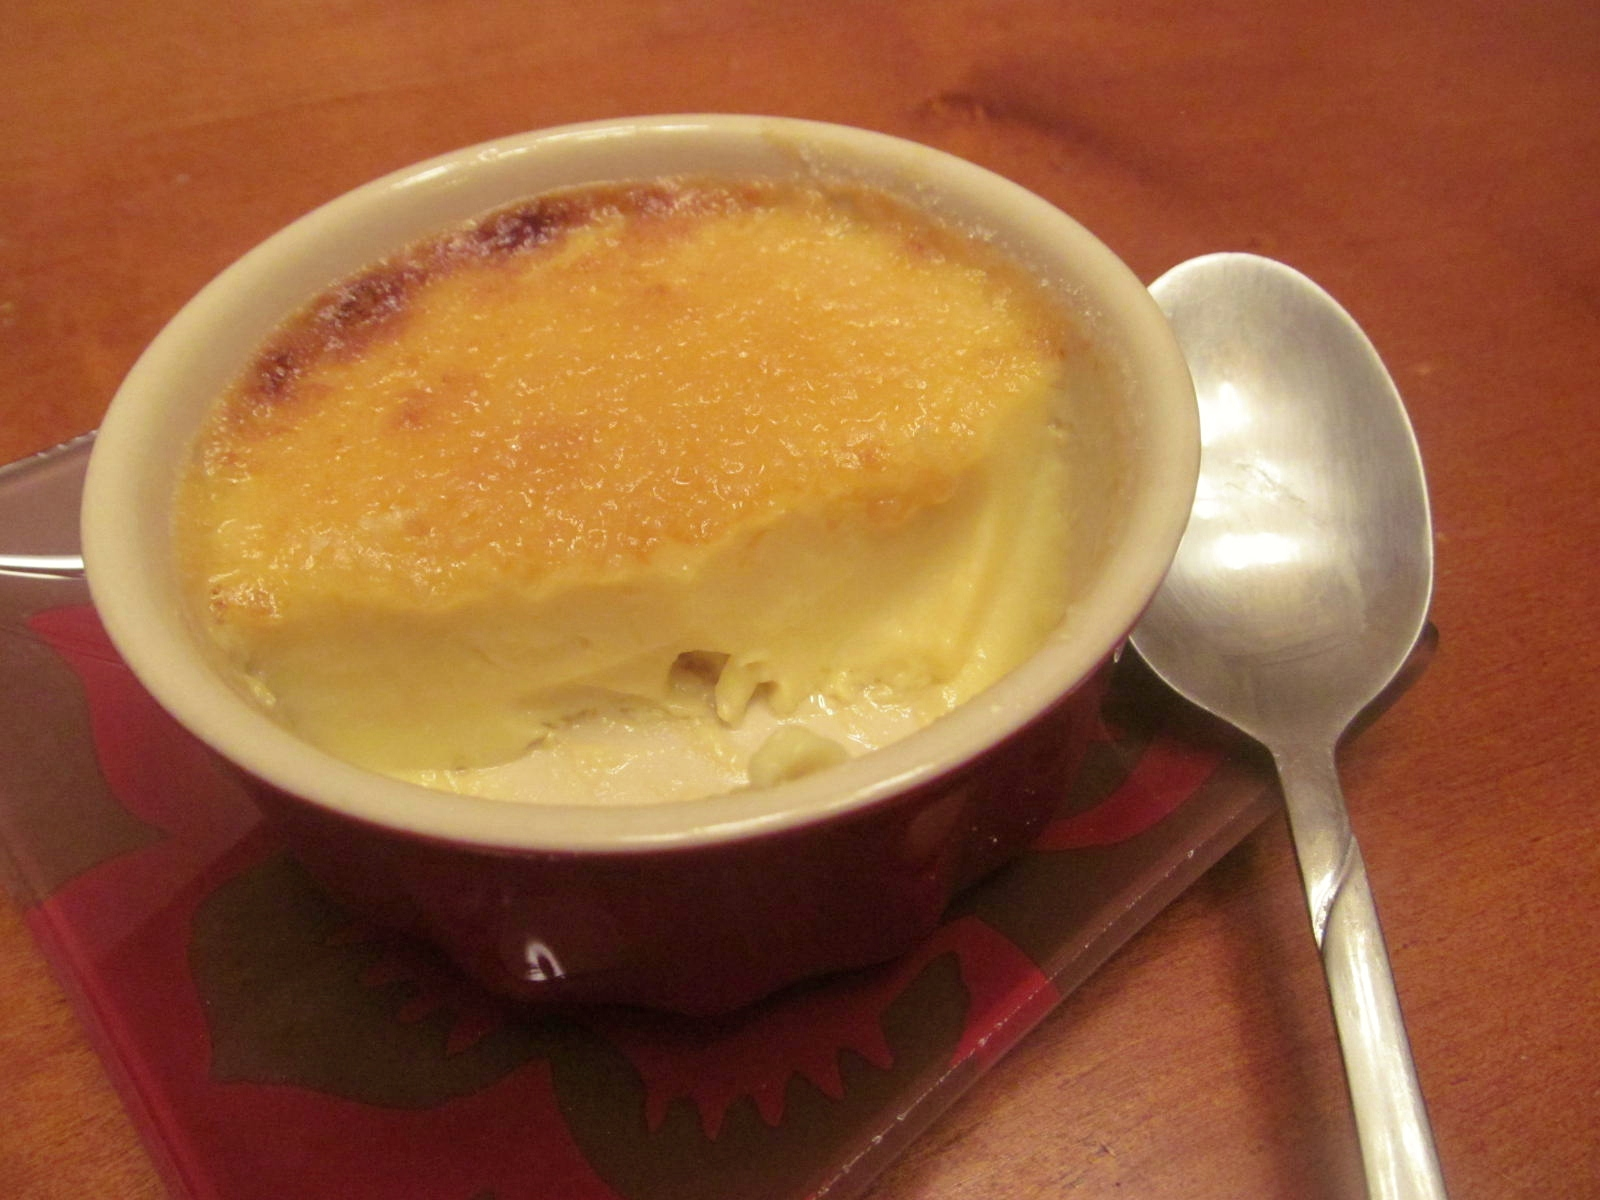 A Crafty Cook: White Chocolate Creme Brulee